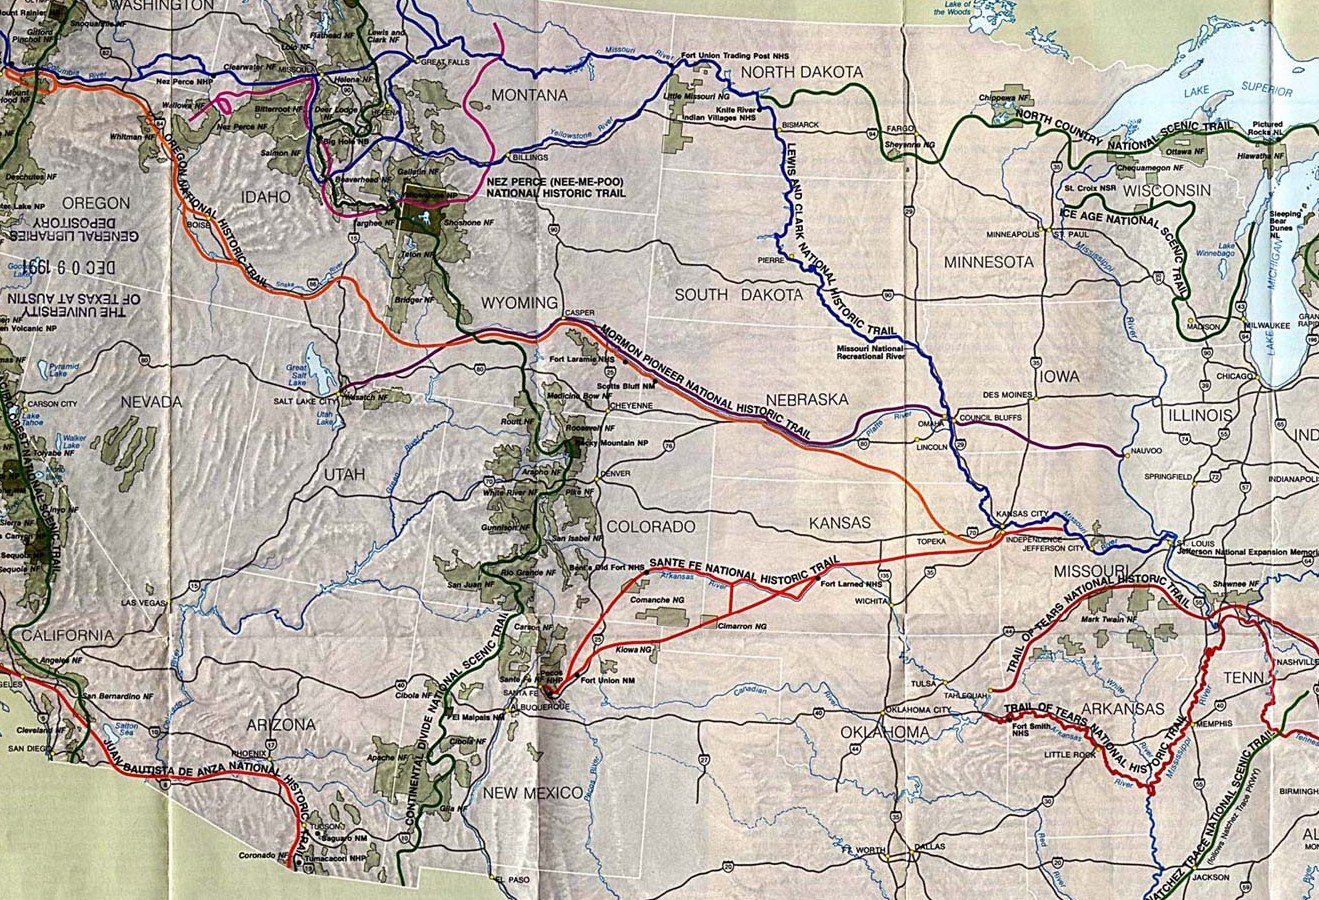 HD Decor Images » United States National Parks and Monuments Maps   Perry Casta    eda         National Trails System Map